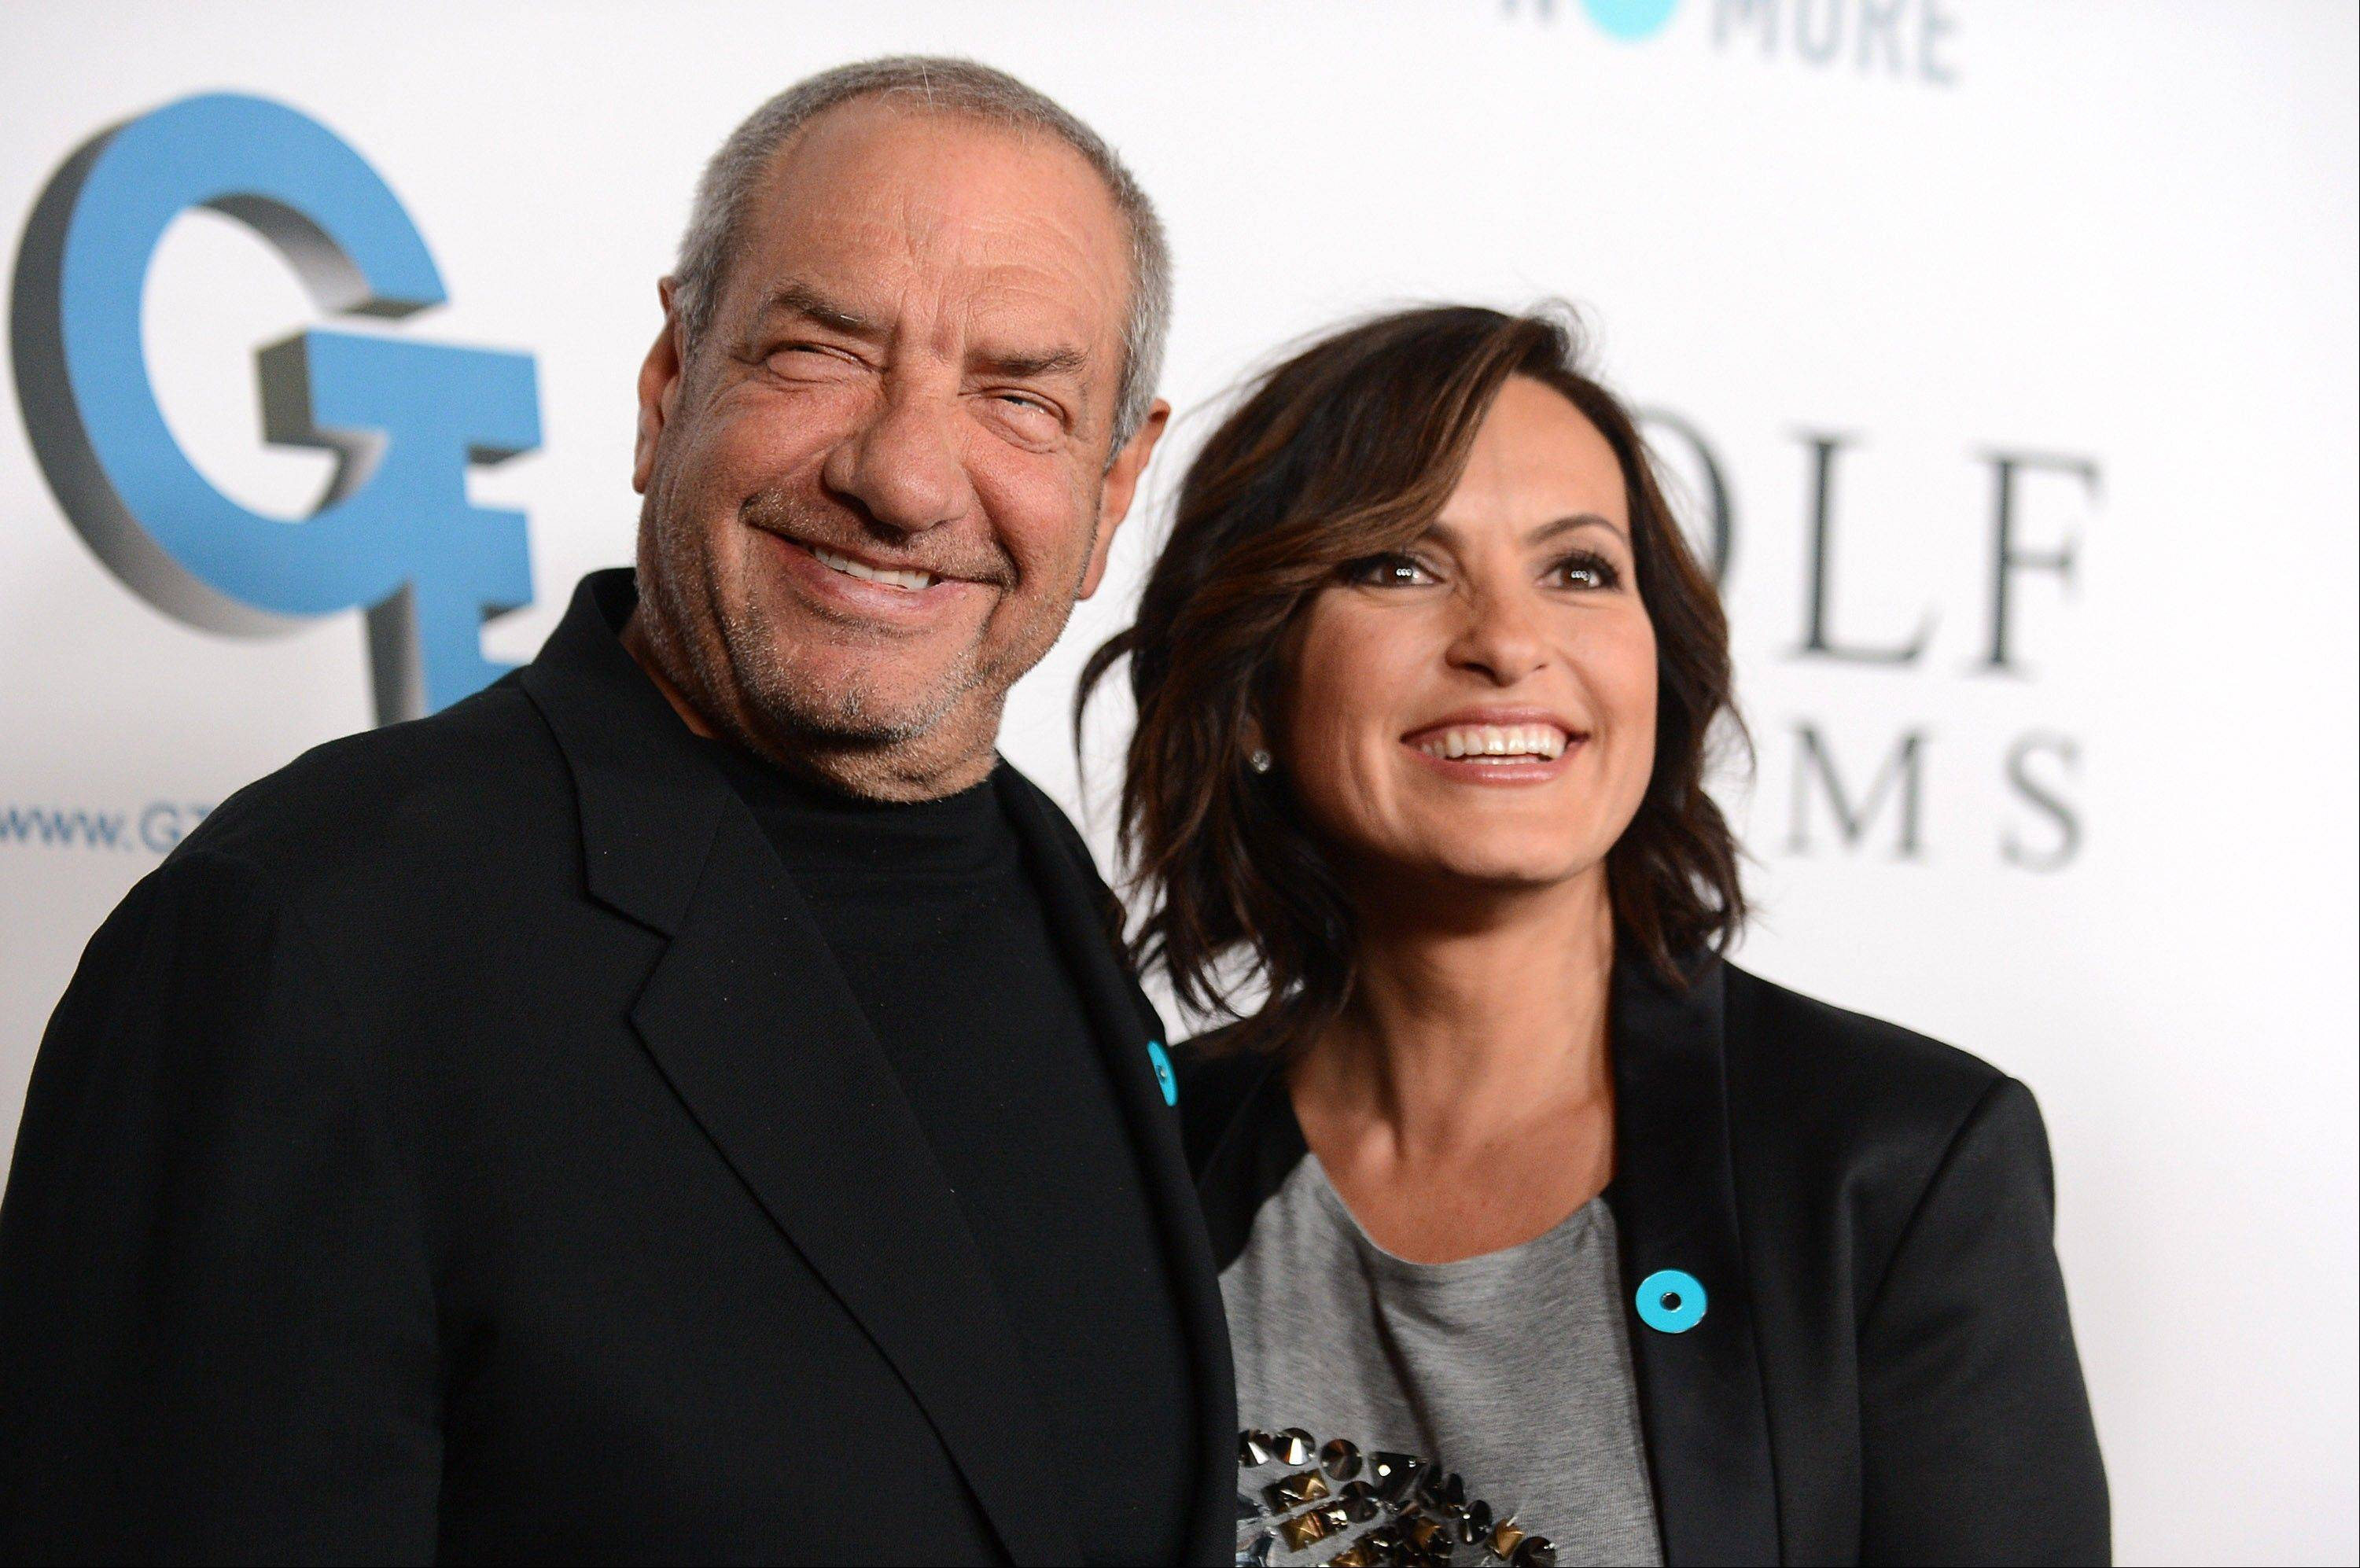 Dick Wolf�s �Law & Order: Special Victims Unit,� starring Mariska Hargitay, is in its 15th season. It airs at 8 p.m. Wednesdays on NBC.